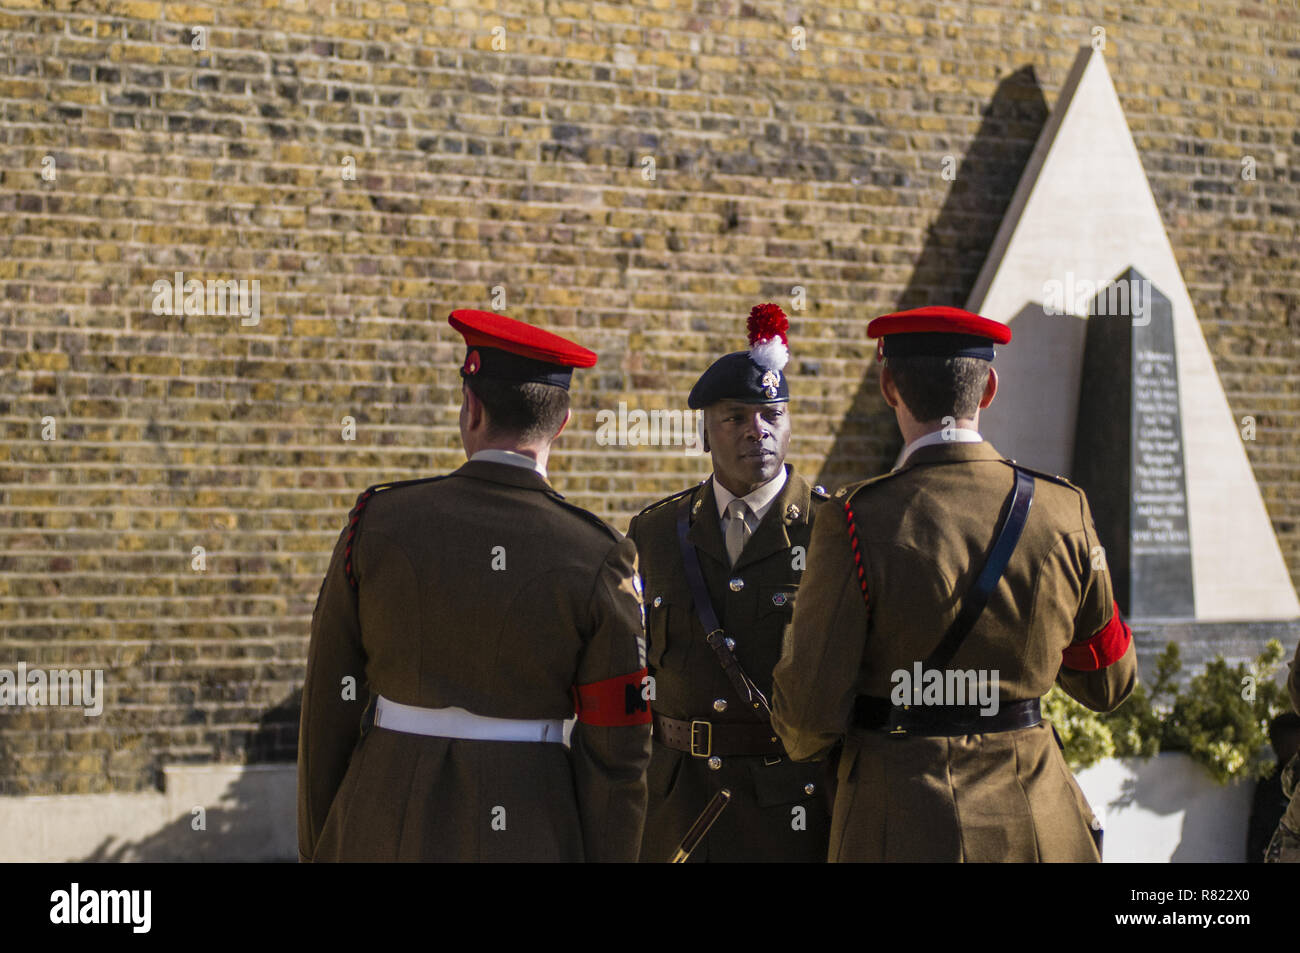 At 11:00, the bugle sounded in Lambeth, near the Stockwell station. With the MP detachment and the London fire fighters, wreaths are laid at the foot of the monument where 574 local men are remembered  At 13:00, on Windrush square, Afro-Caribbean and African solders are remembered  Featuring: 253 Provost Company 4 RMP Where: London, United Kingdom When: 11 Nov 2018 Credit: Alozie/WENN.com - Stock Image